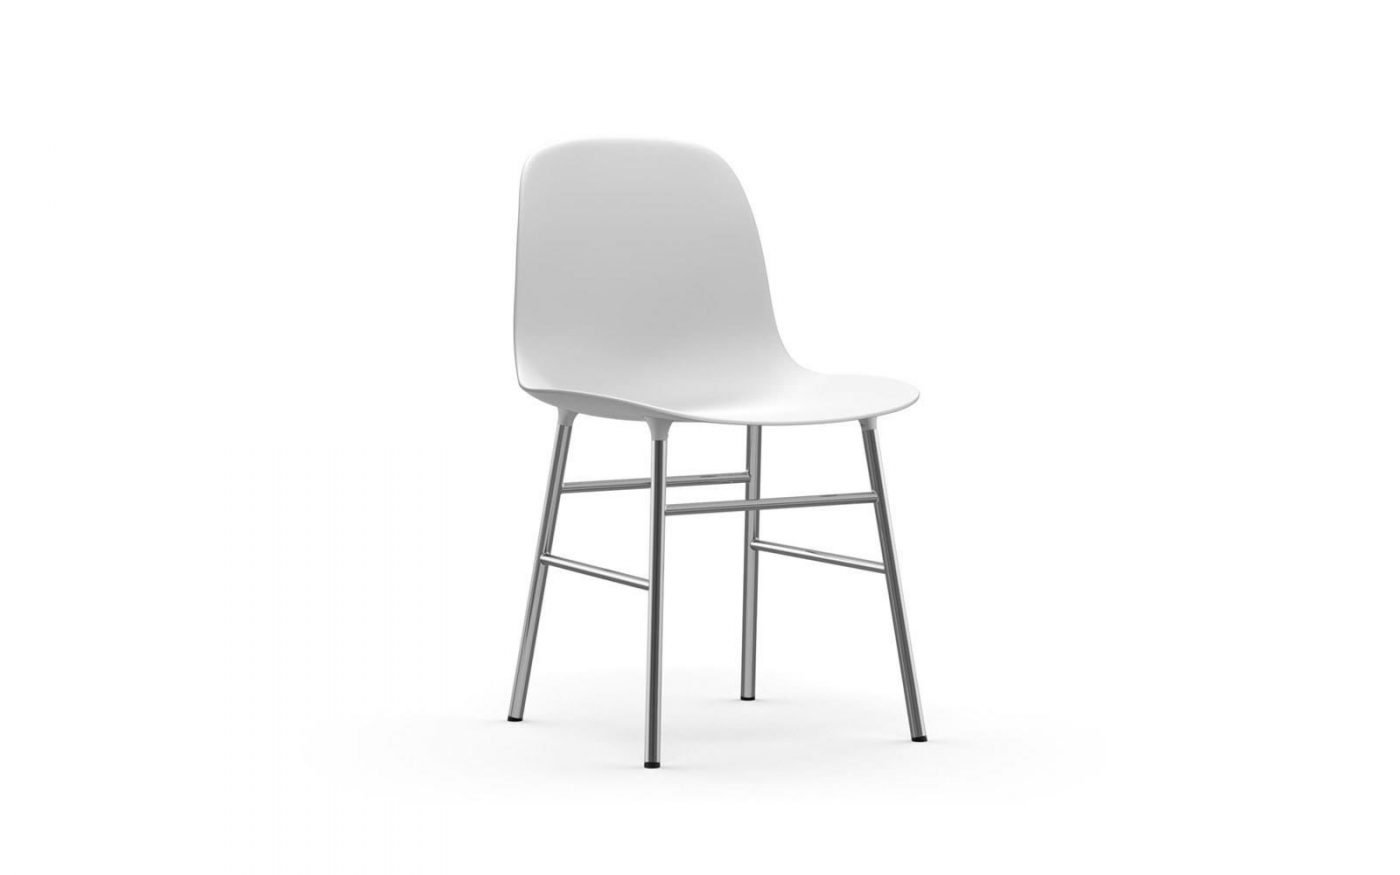 Form-chair-chrome-white-normann-copenhagen